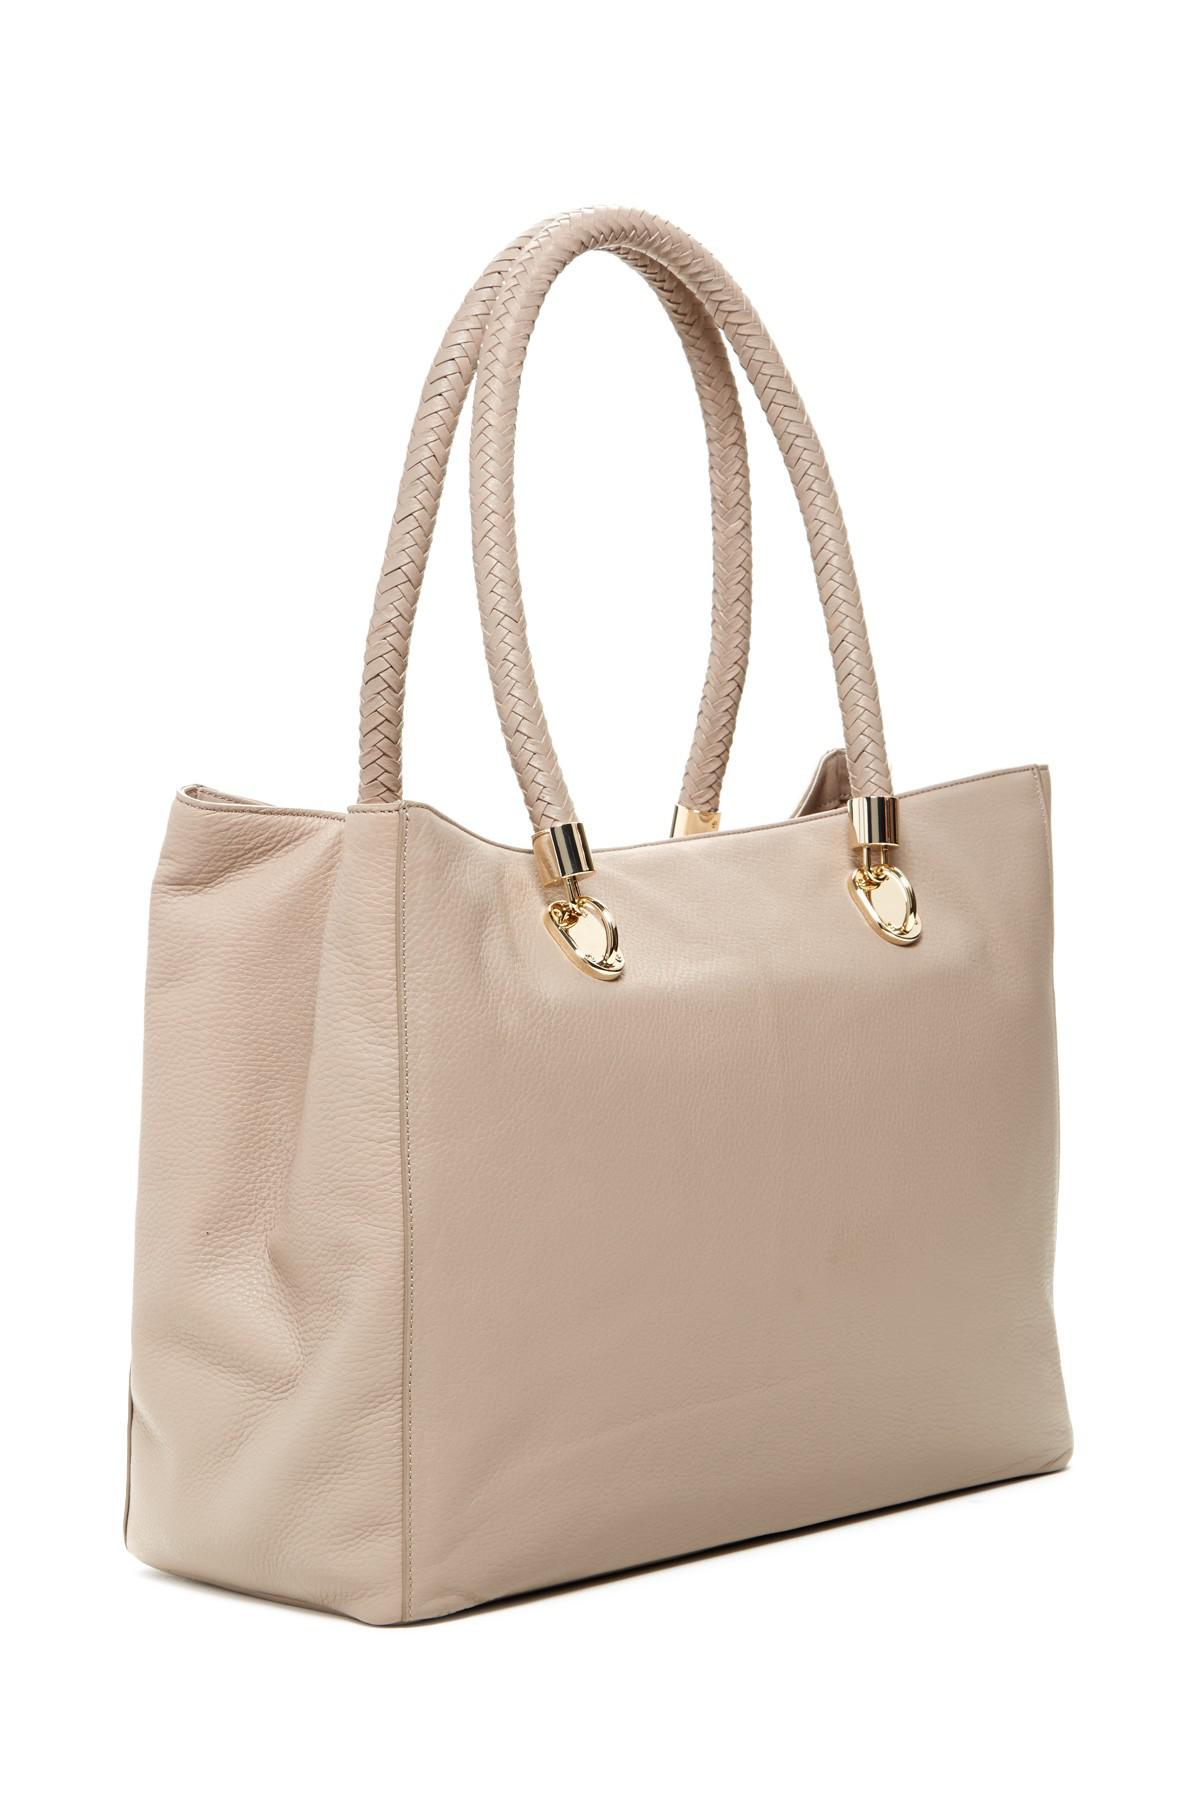 2d18bf85511 Lyst - Cole Haan Benson Large Leather Tote in Natural